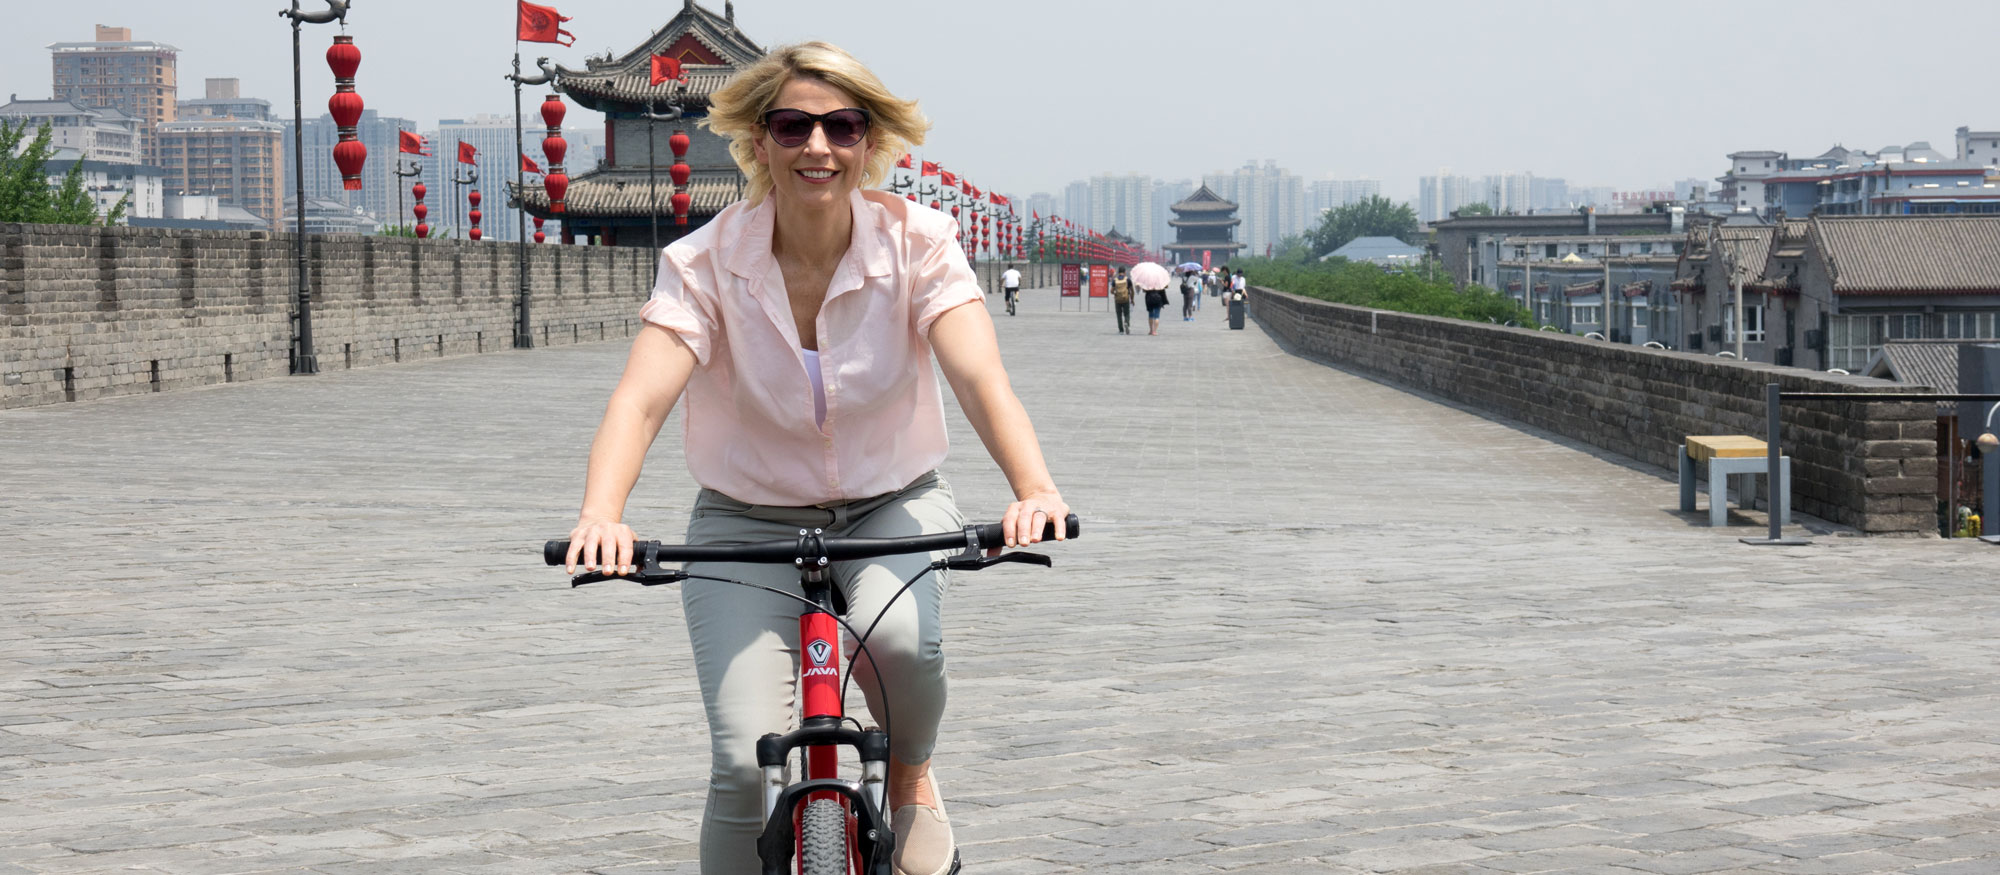 Places To Love - Xi'an China - Samantha Brown